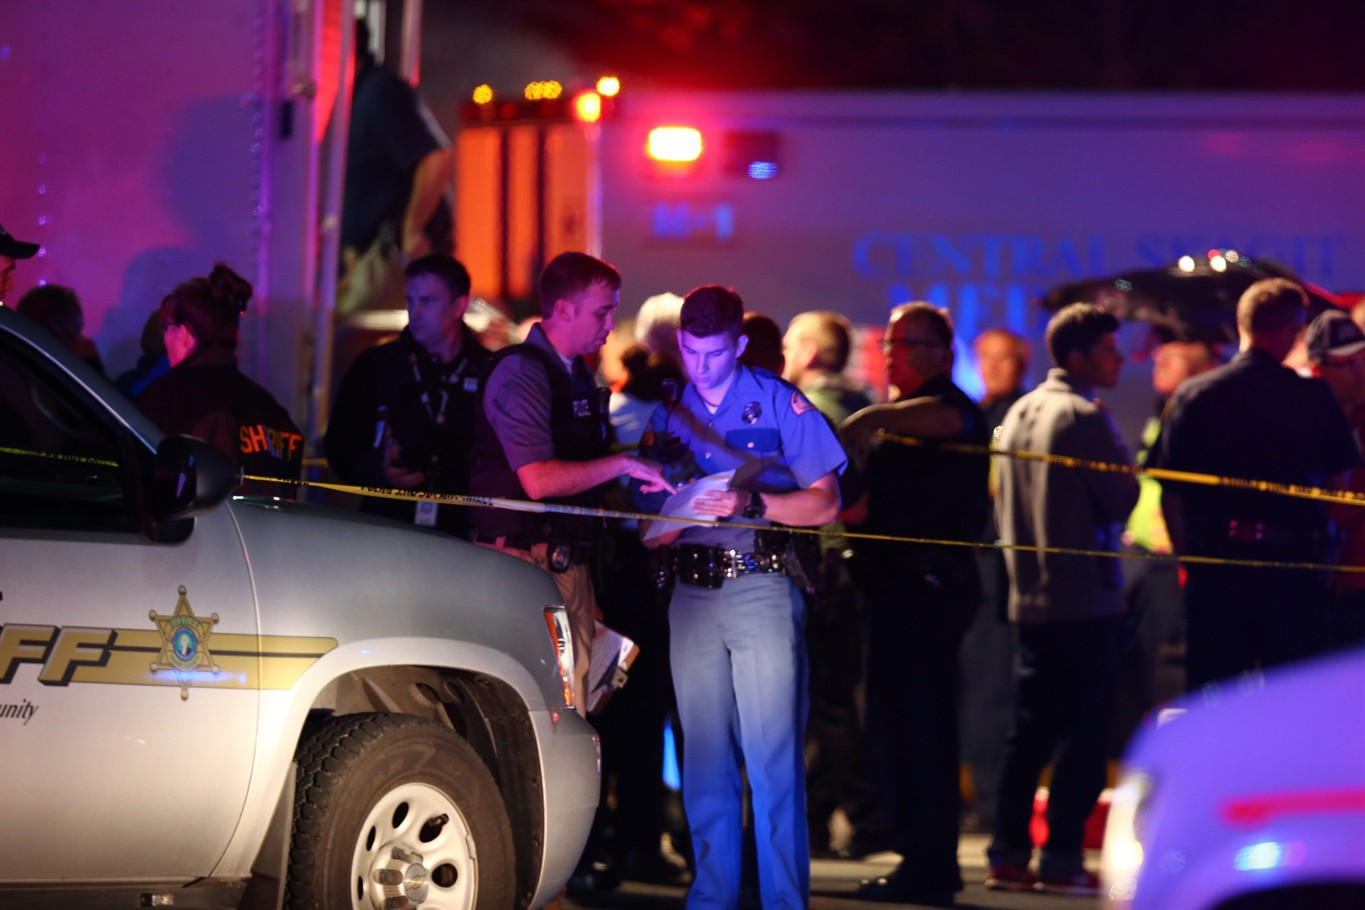 At least four dead after shooting in Burlington, Washington